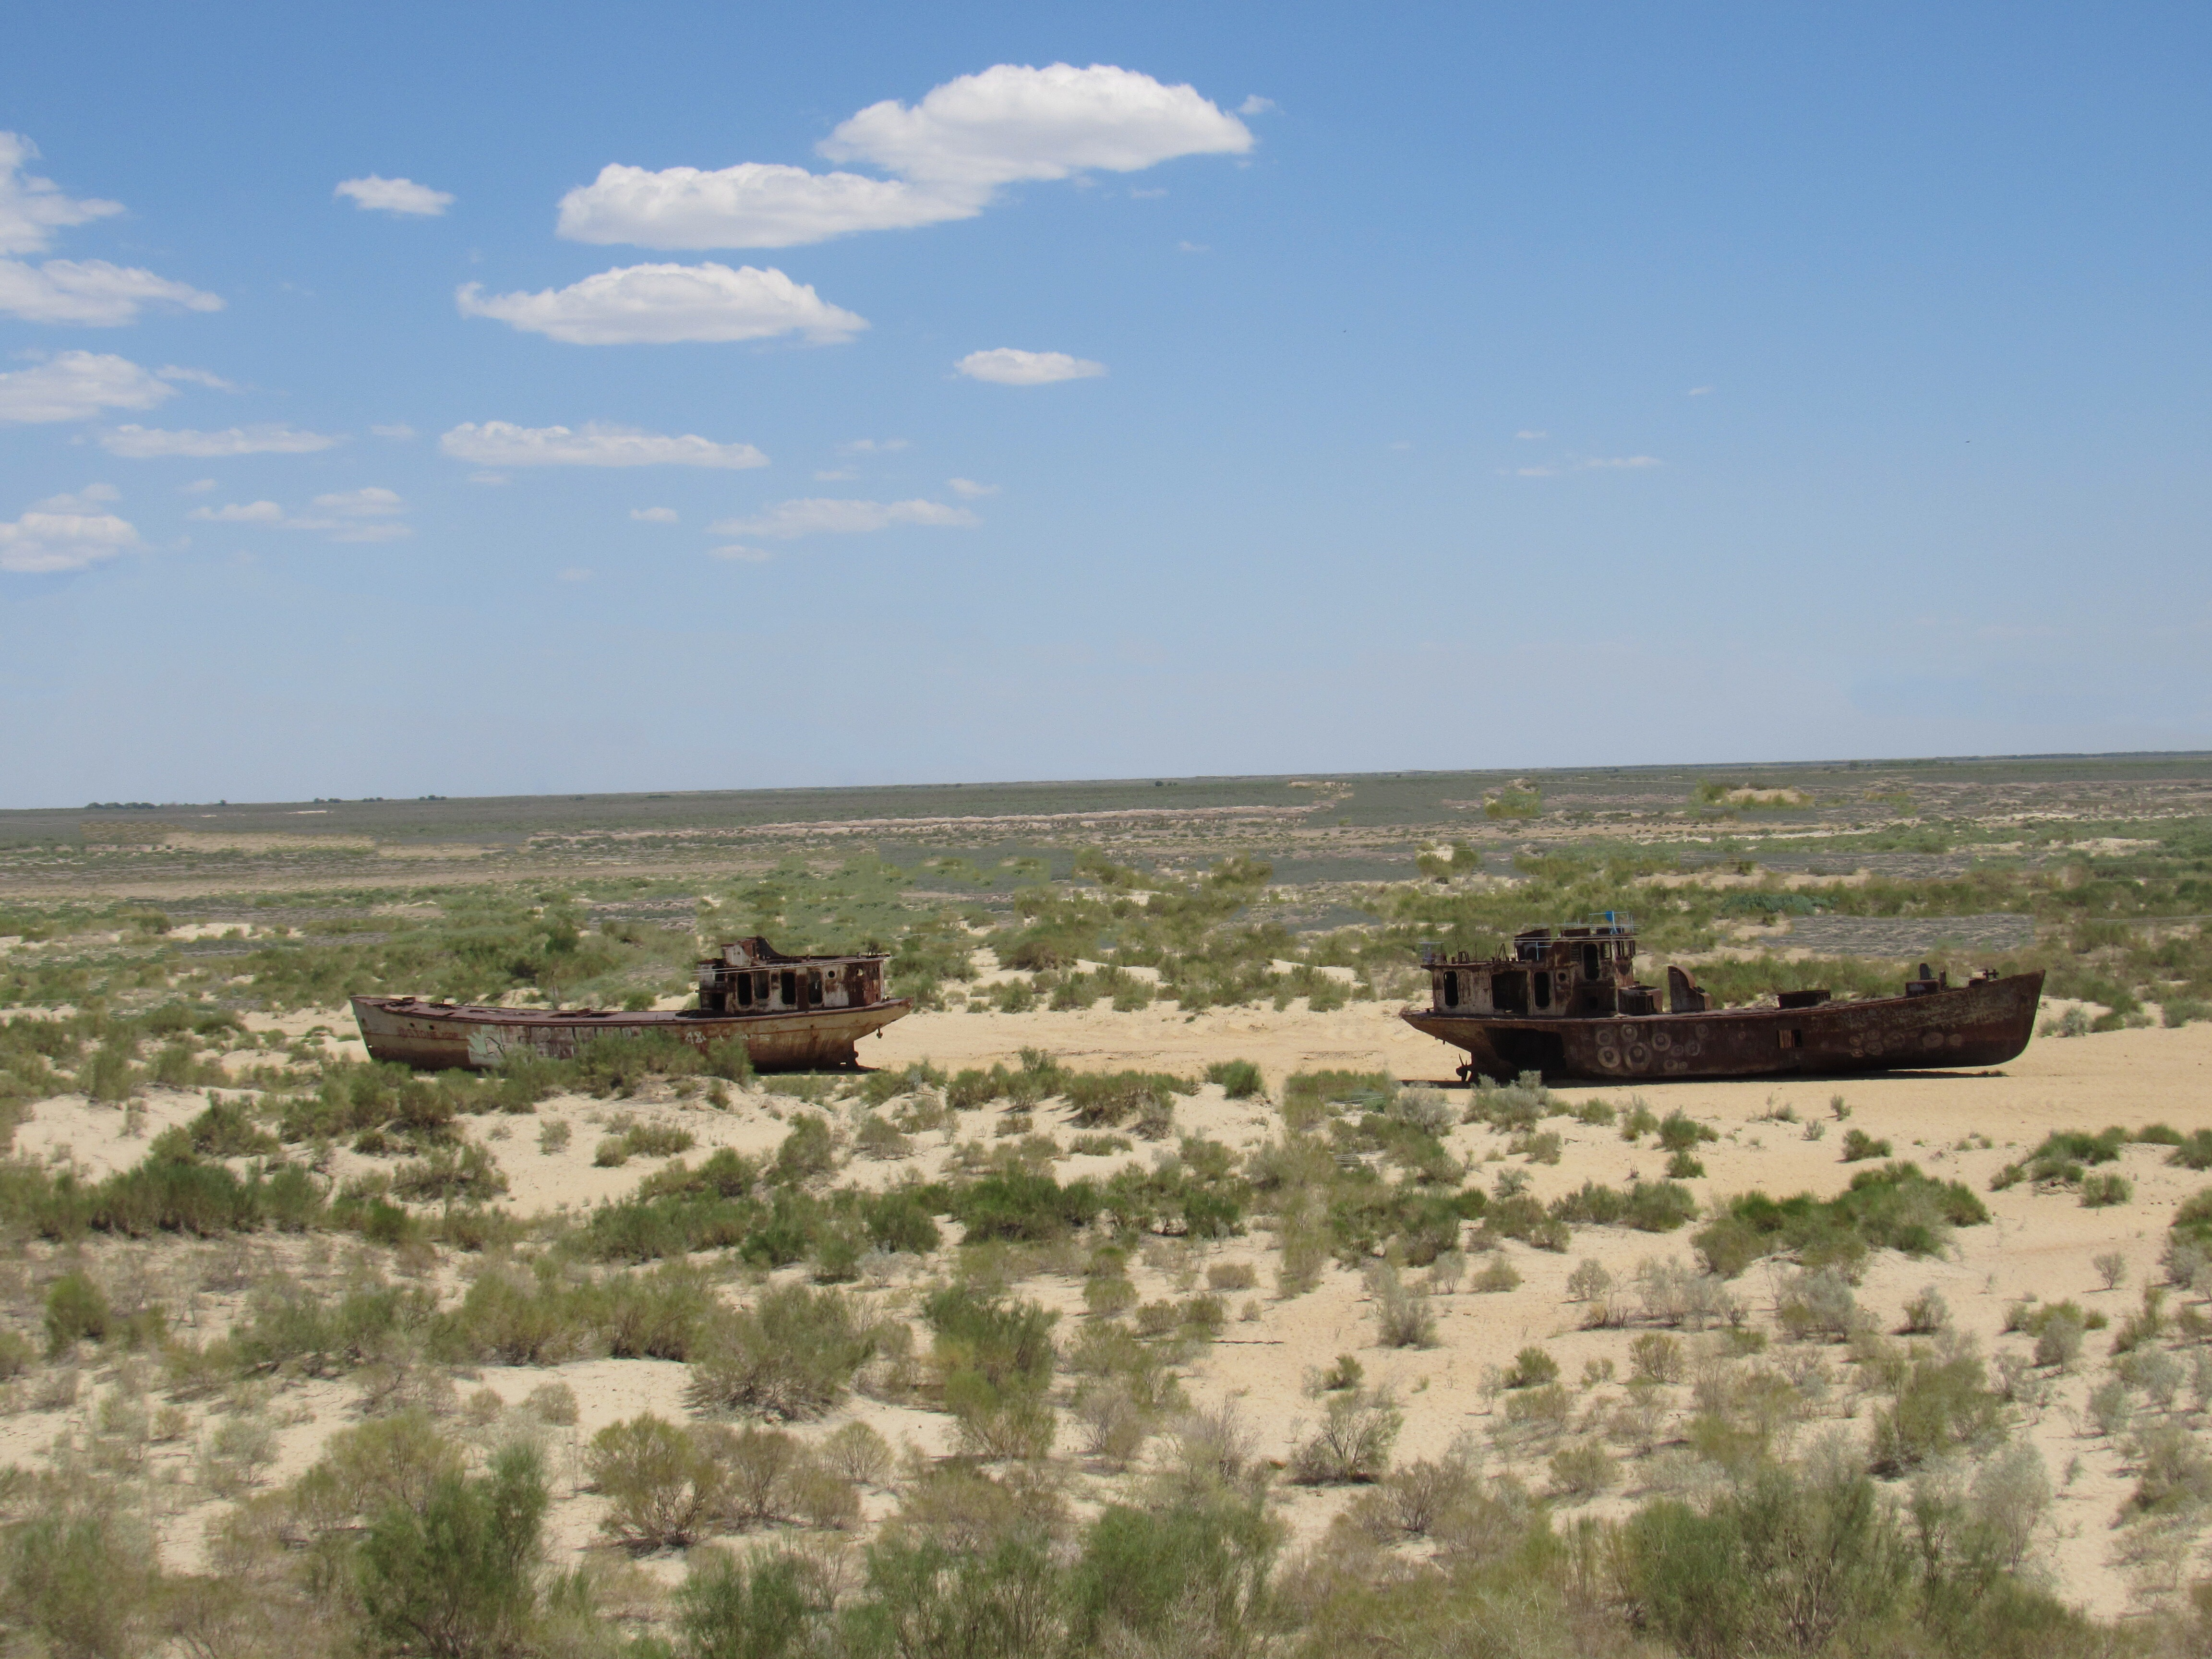 Fishing boats on the Aral Sea